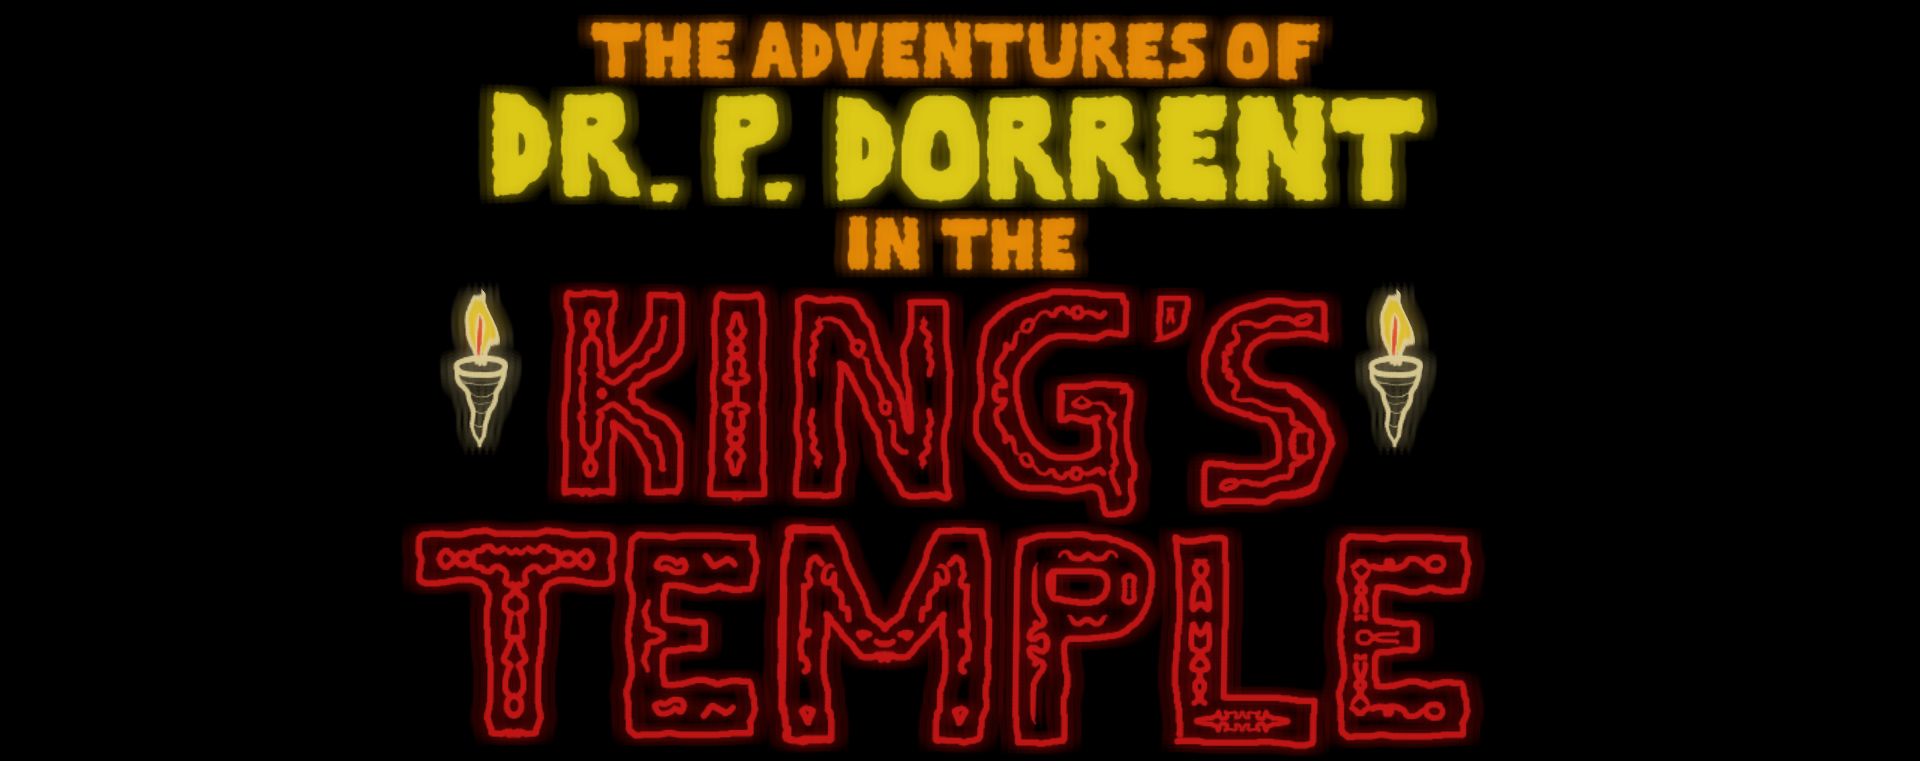 The Adventures of Dr. P. Dorrent in the King's Temple